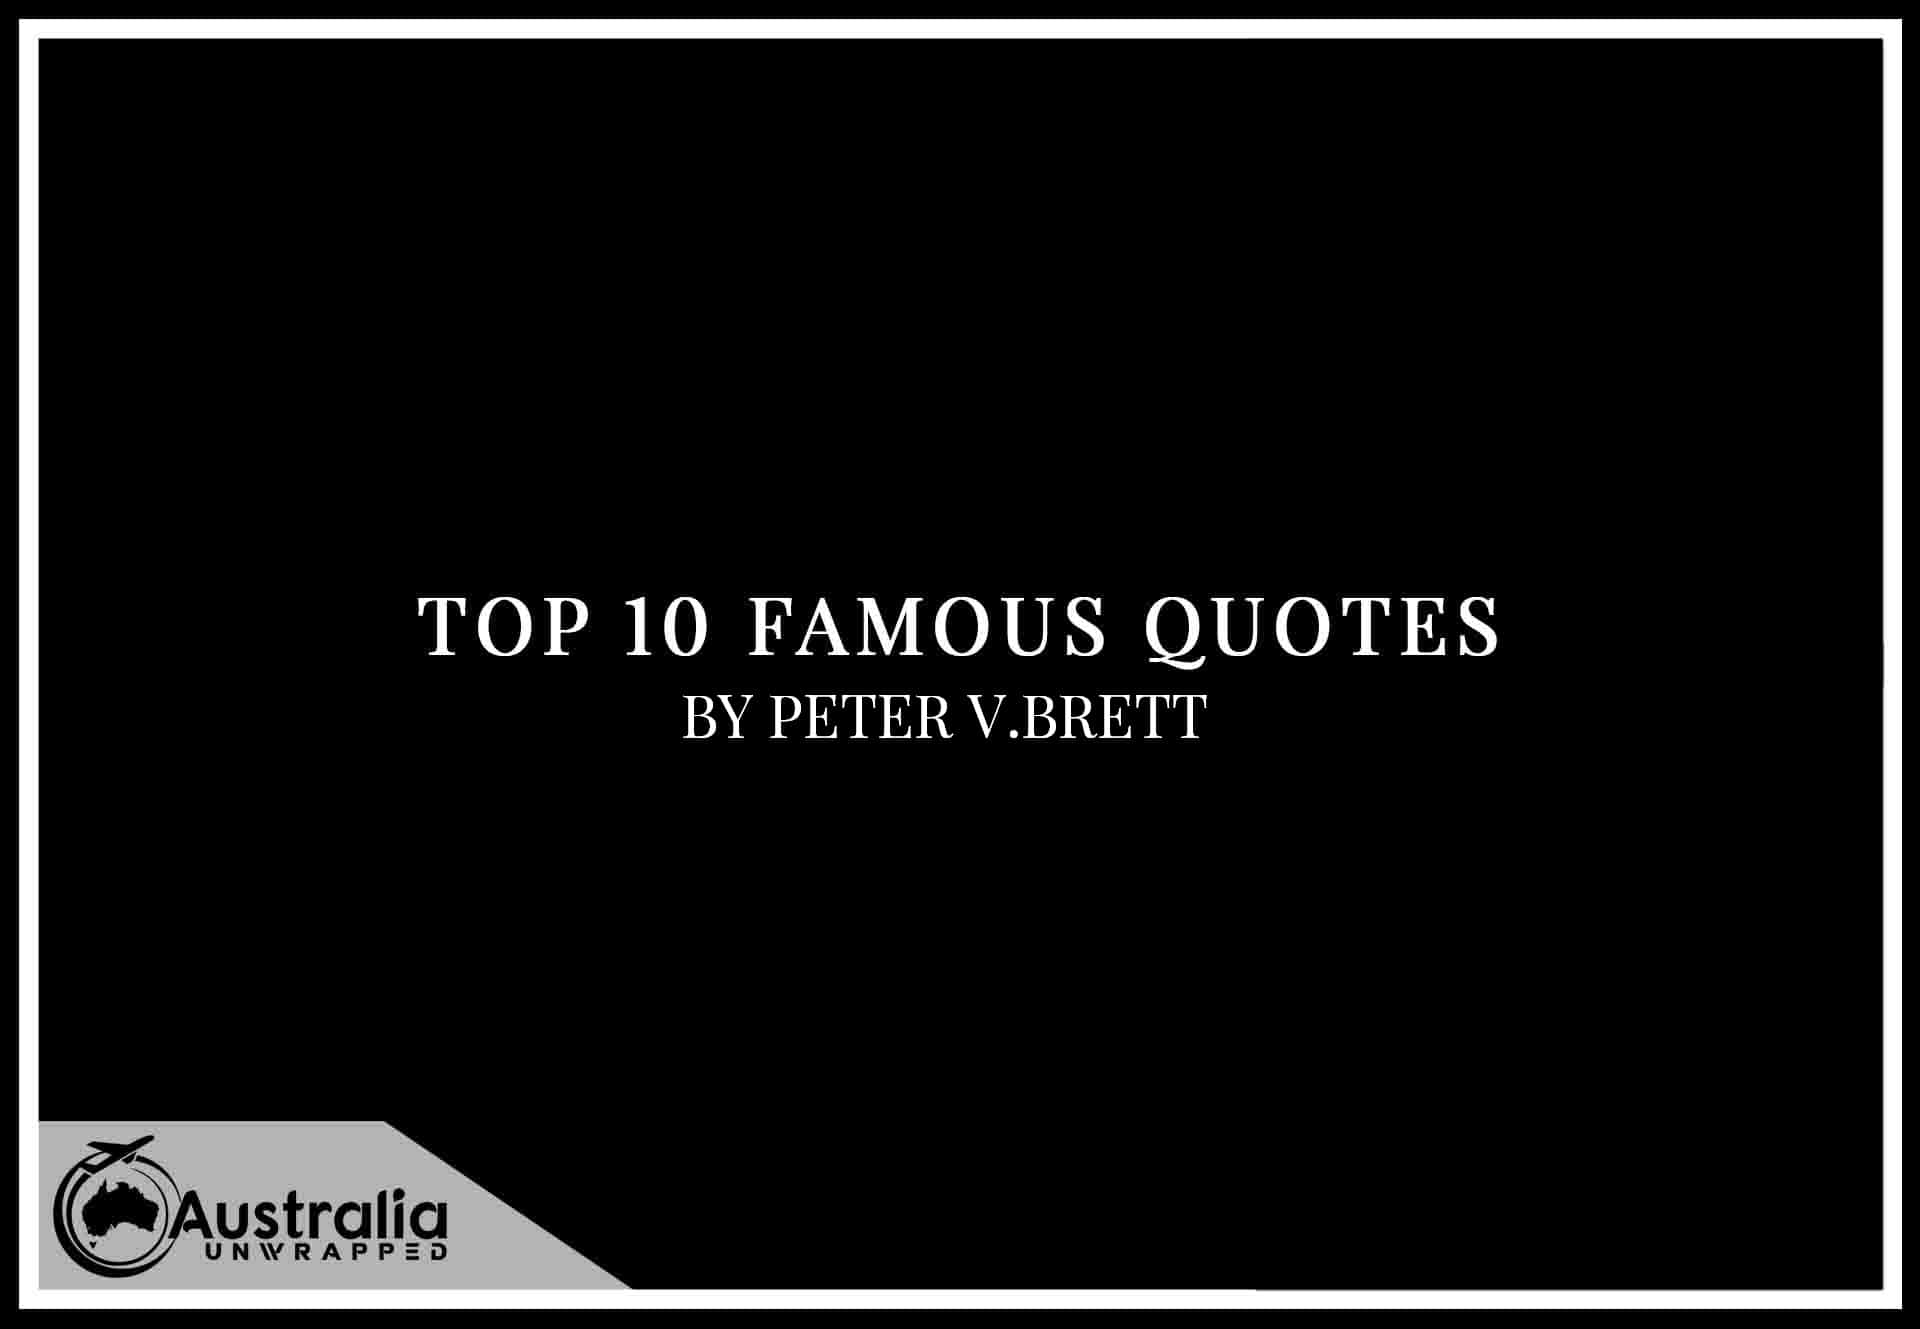 Top 10 Famous Quotes by Author Peter V. Brett